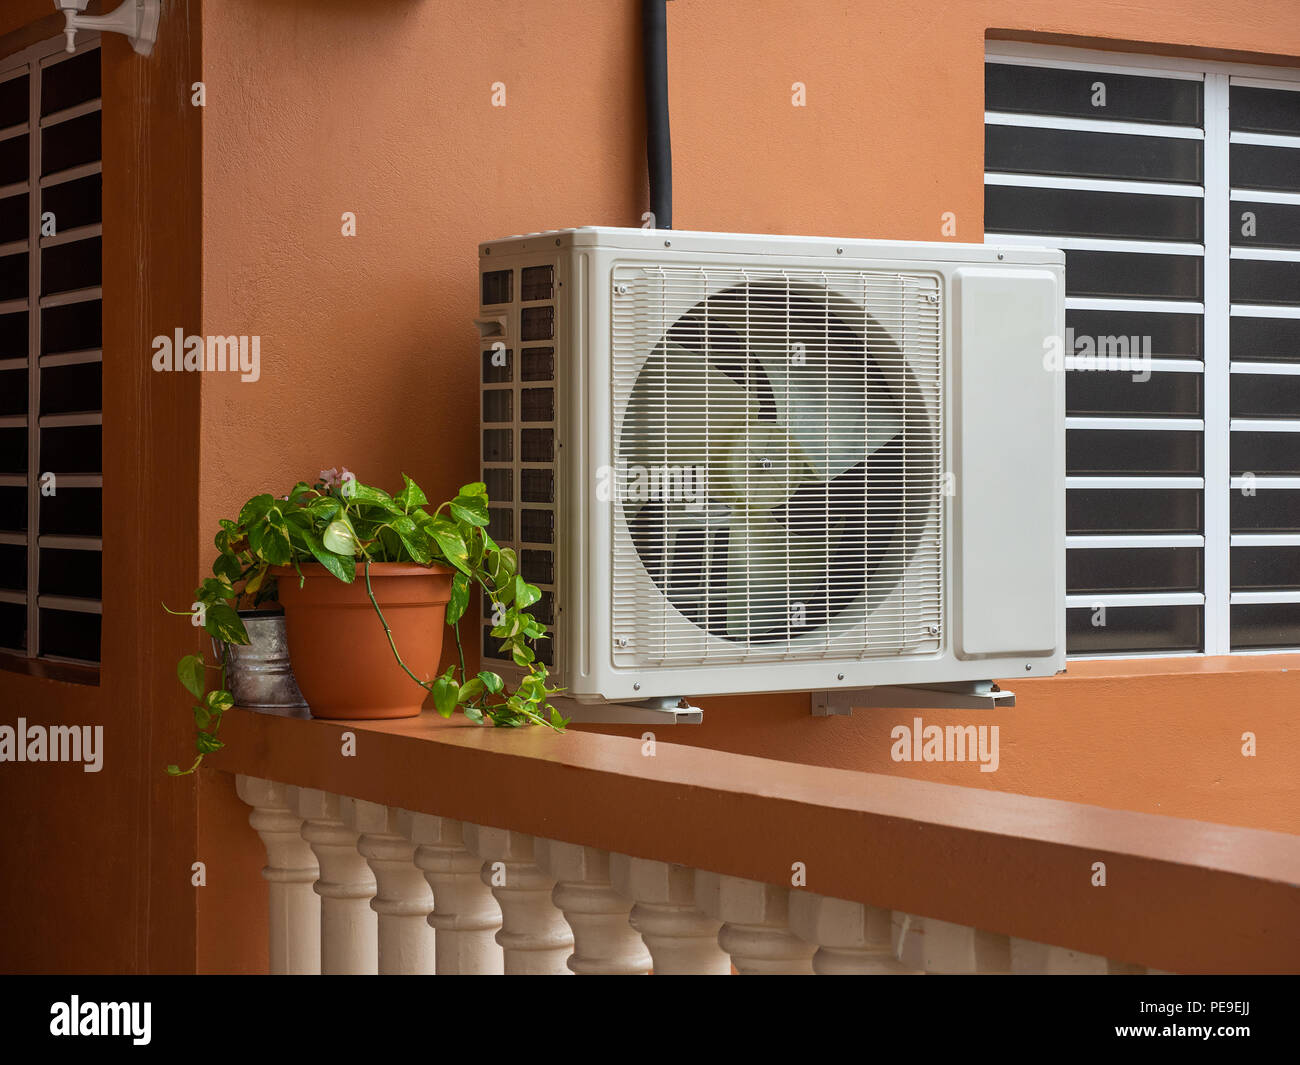 Air conditioner and heating heat pump - Stock Image